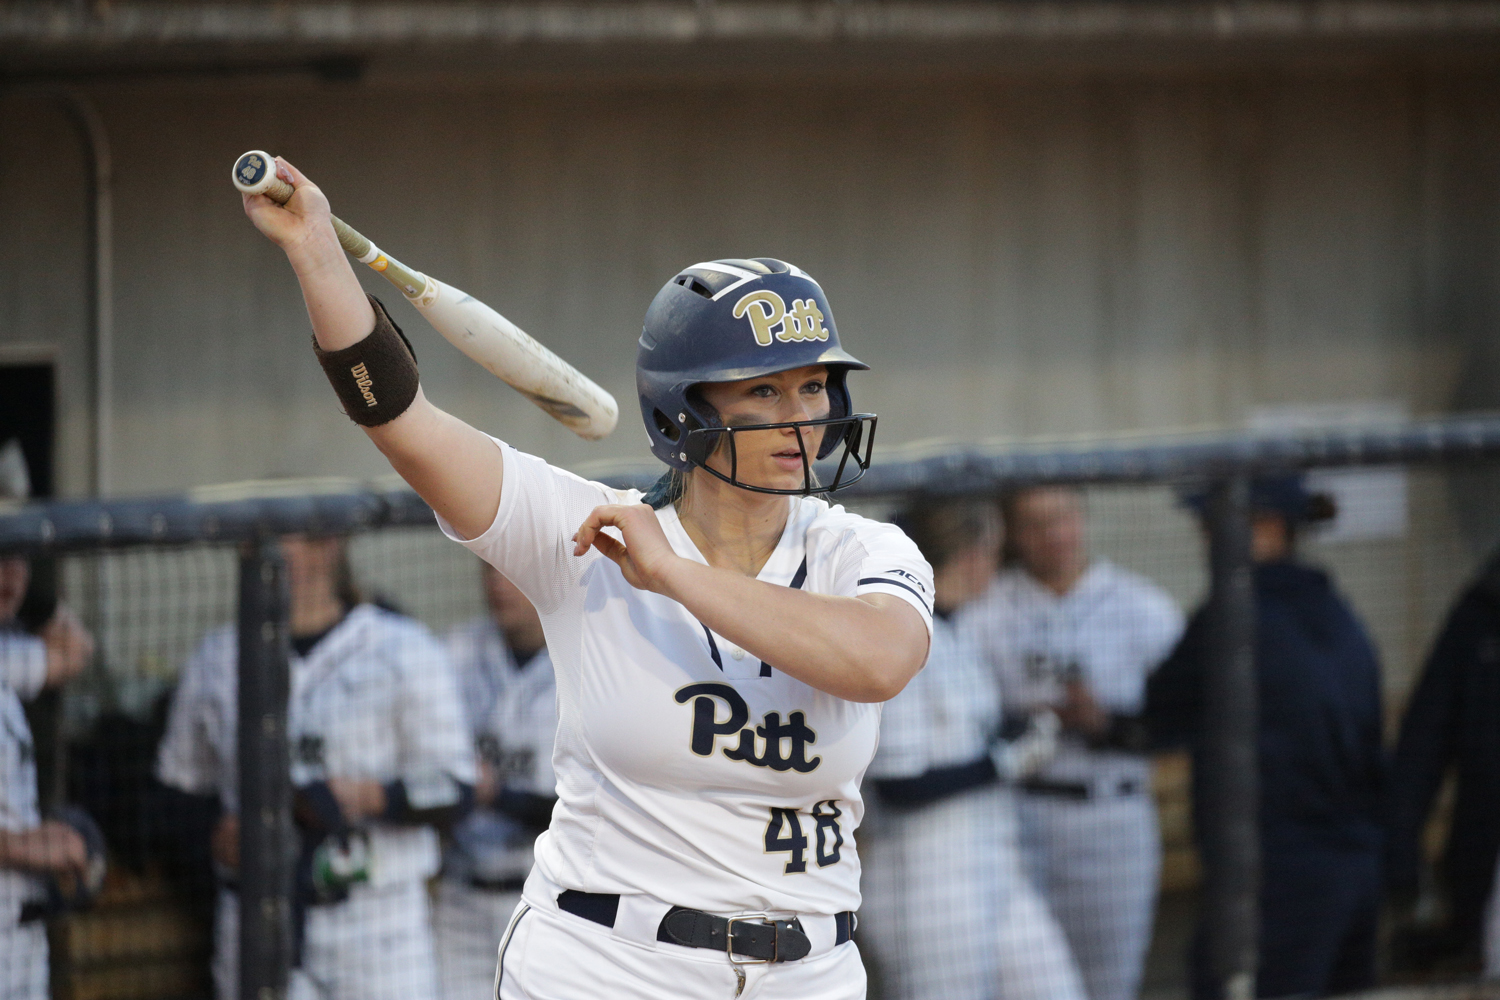 Senior first baseman Gabrielle Fredericks (pictured) and junior catcher Walker Barbee recorded the lone Panthers' RBIs on the day.